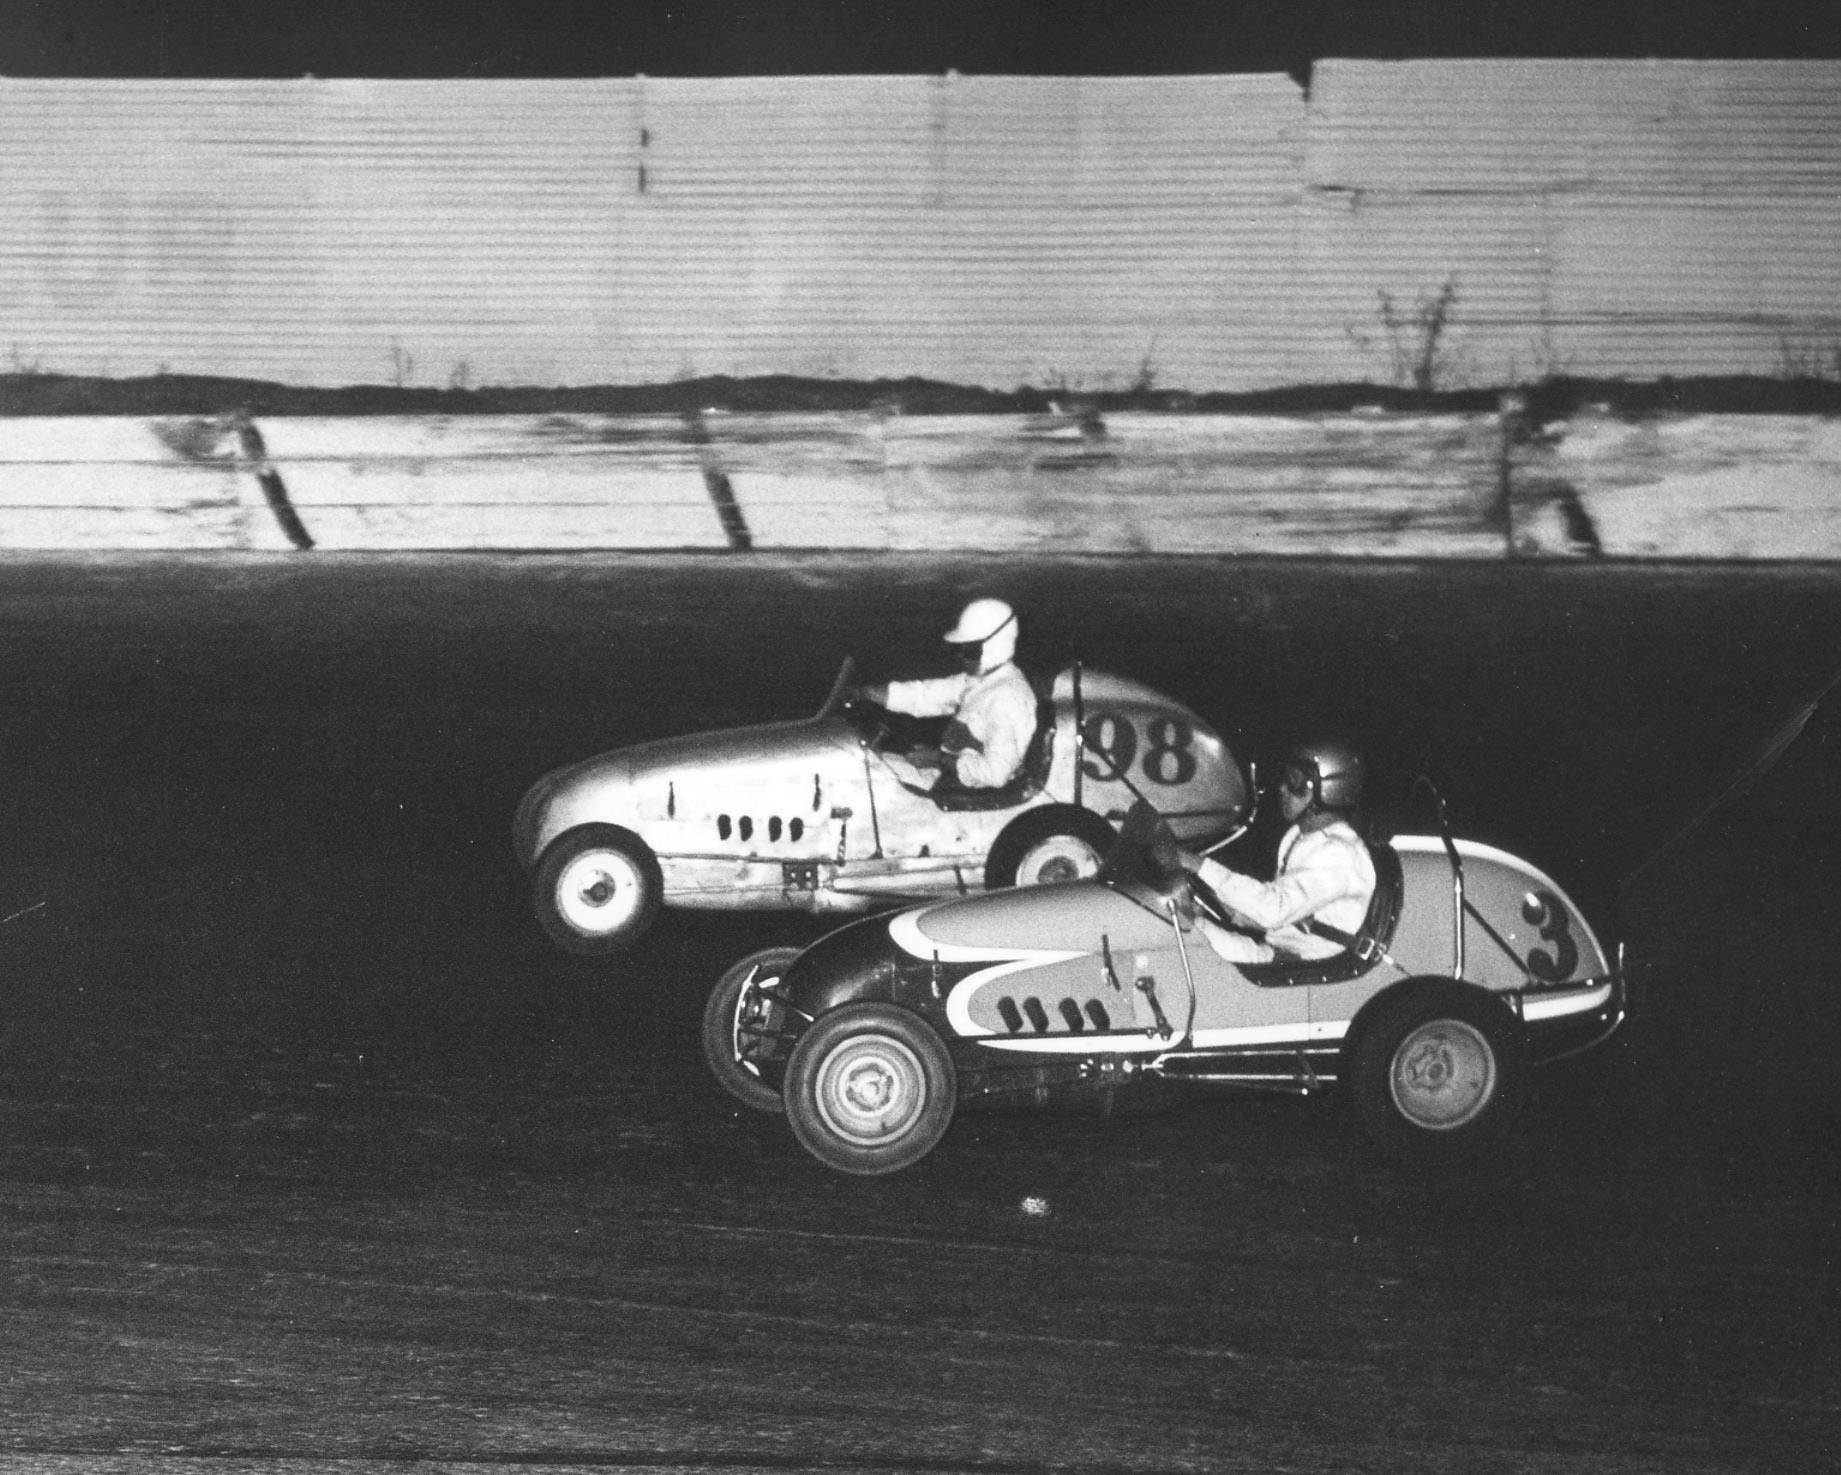 8  1961 #98 J. Baldwin, #3 G.Benson in M. Goff Offy, for the lead in the Little Indy San Jose Speedway